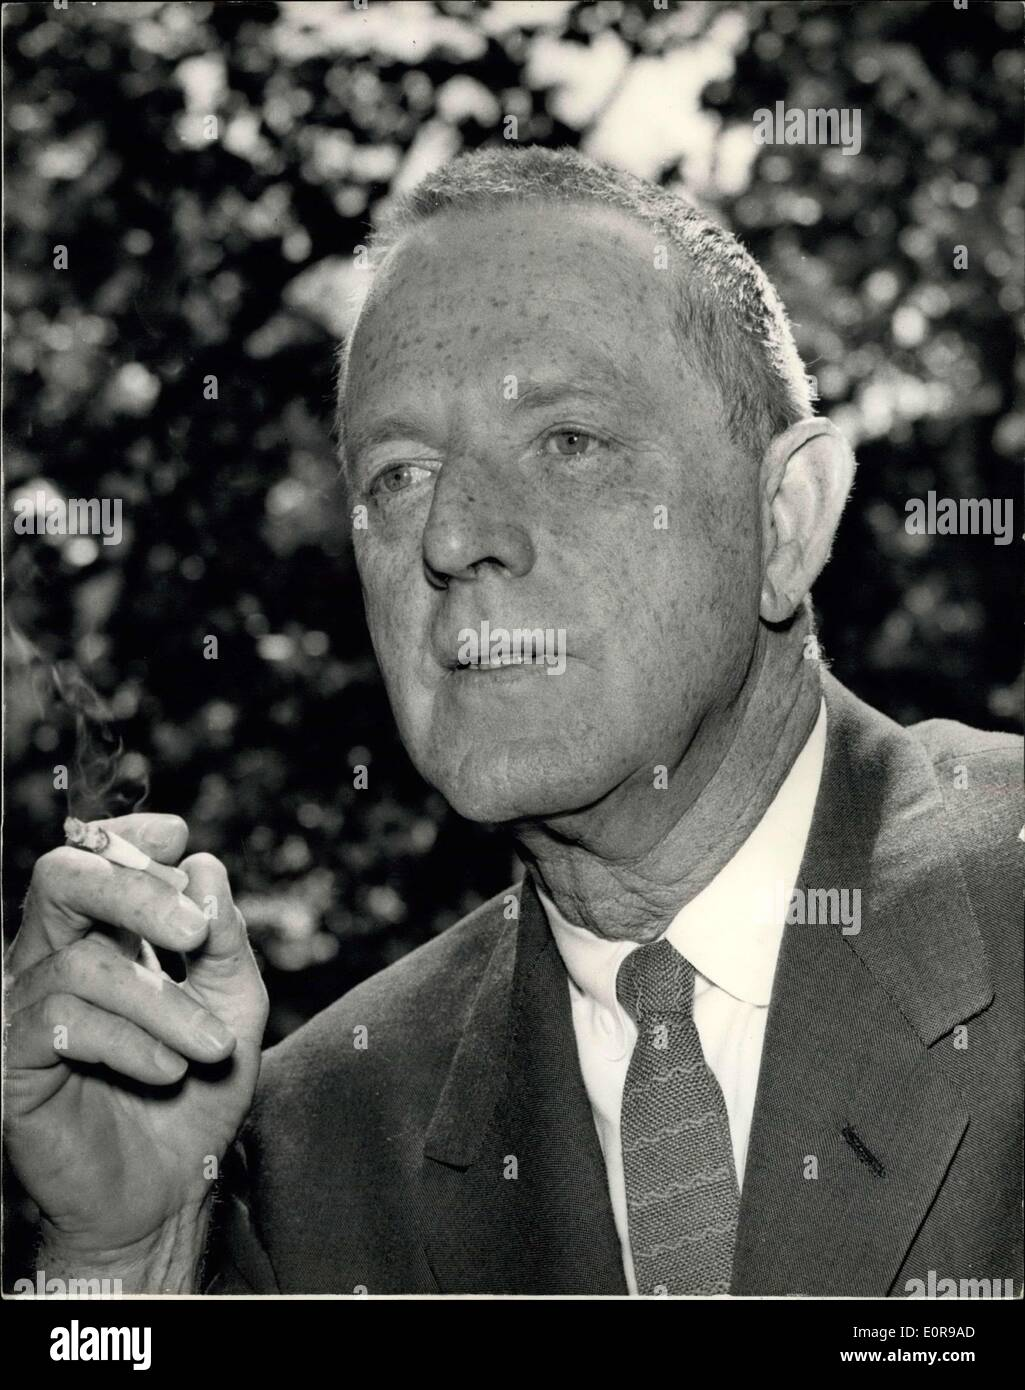 Aug. 27, 1958 - Reception for the Author of the Novel ''God's Little Acre'': There was a press reception today for 55-year-old Erskine Caldwell, author of the world's third best seller ''God's Little Acre'' which has sold 7,000,000 copies. Caldwell is in London to attend the premiere of the film version of his novel at the London Pavilion on Sept. 5th. Photo shows American novelist Erskine Caldwell seen at the press reception at the Savoy Hotel today. - Stock Image